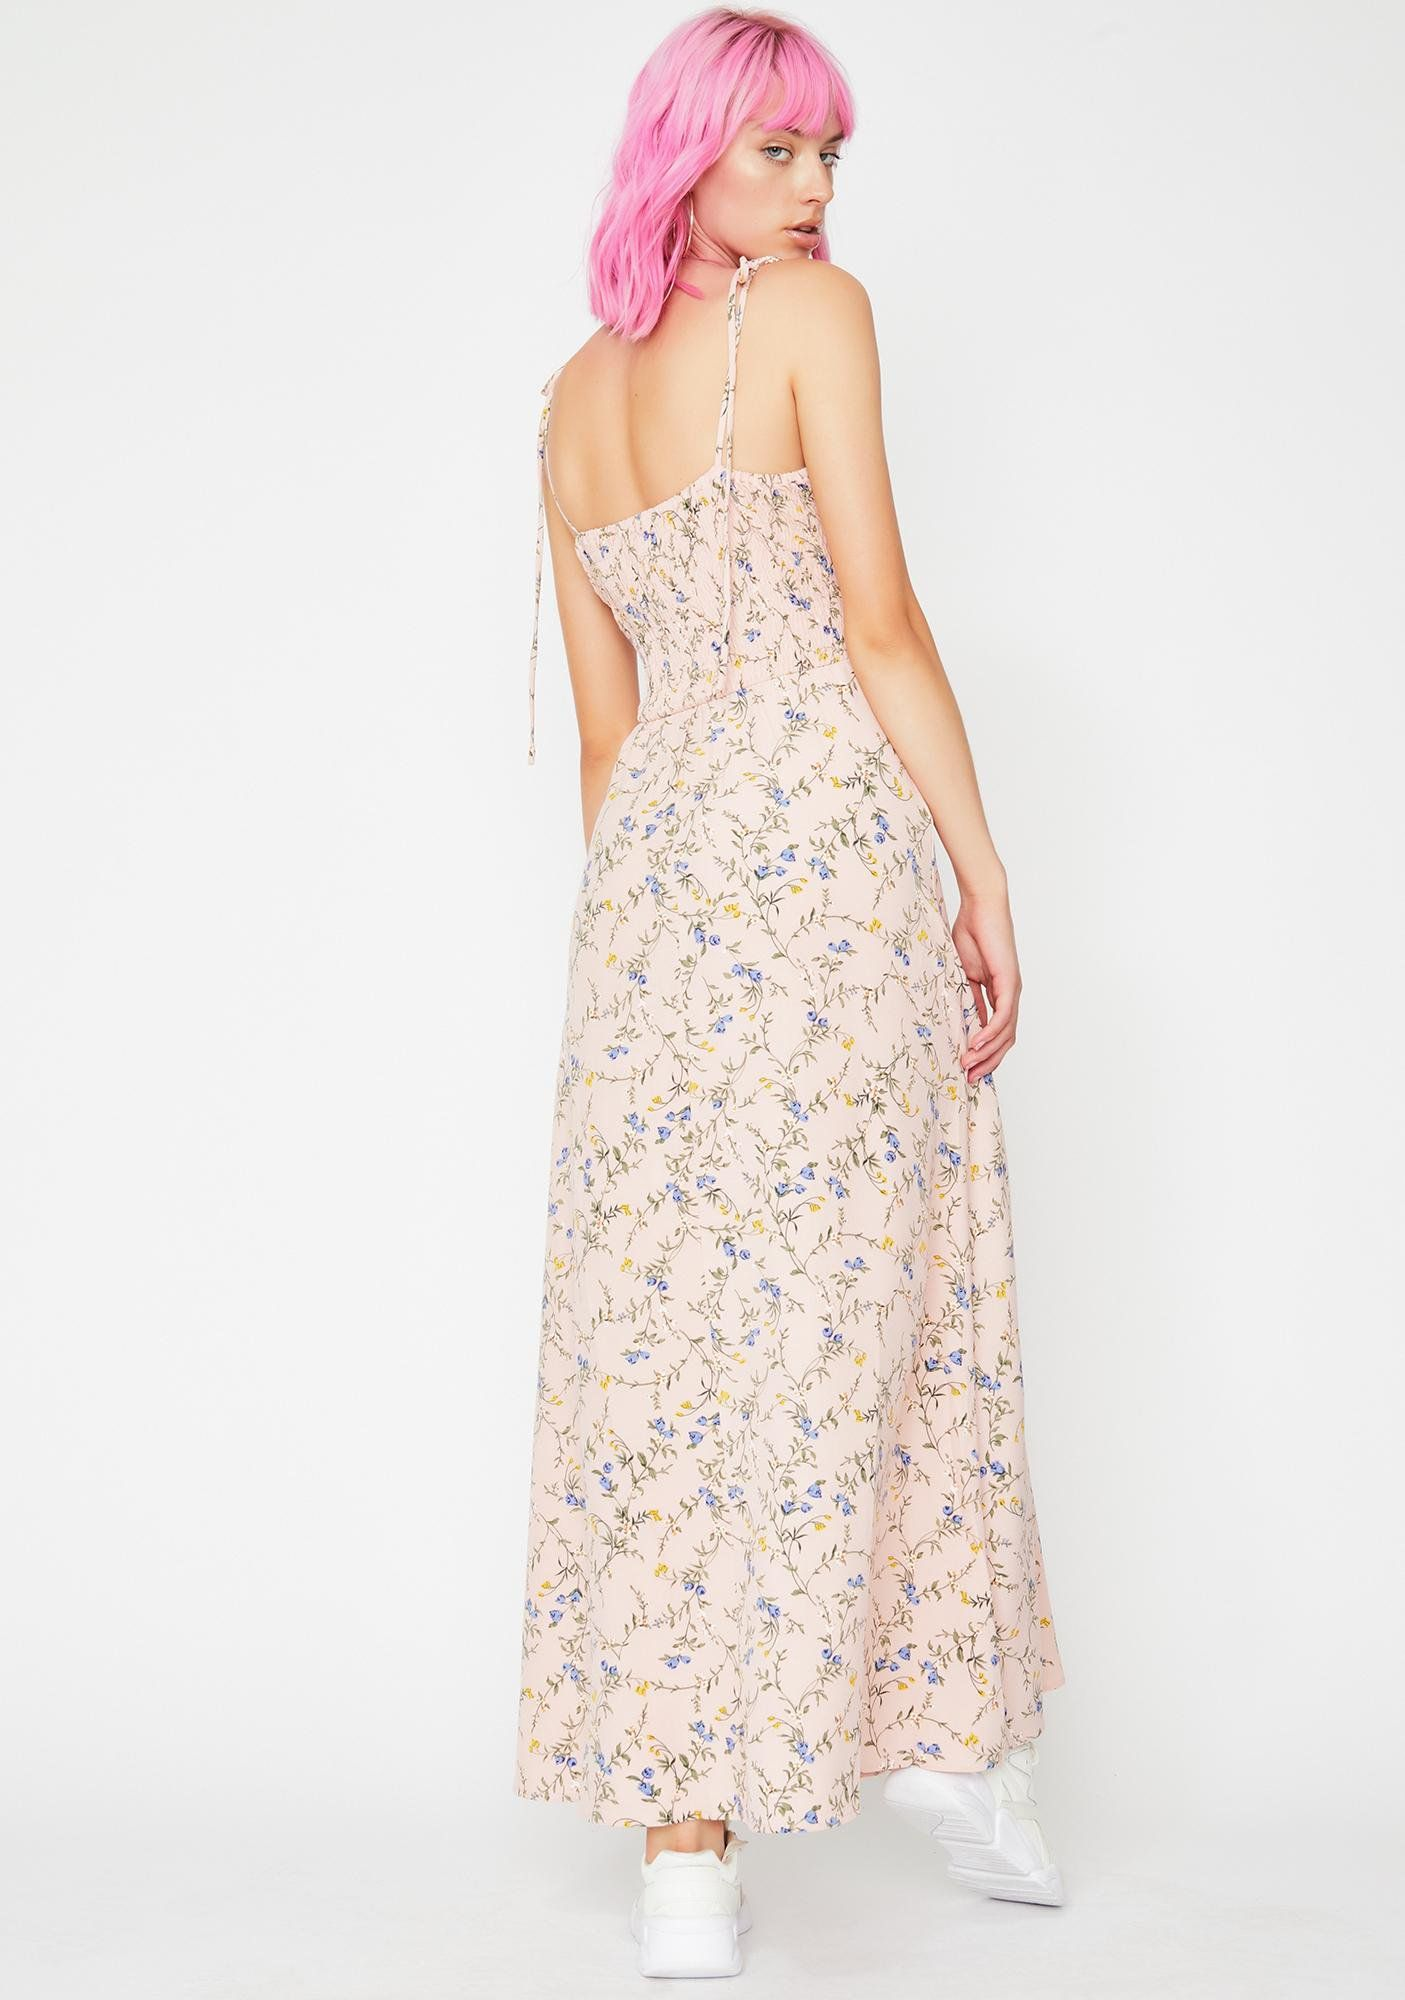 0b147489 Weekend In Venice Floral Dress in 2019 | daydream >clothes ...